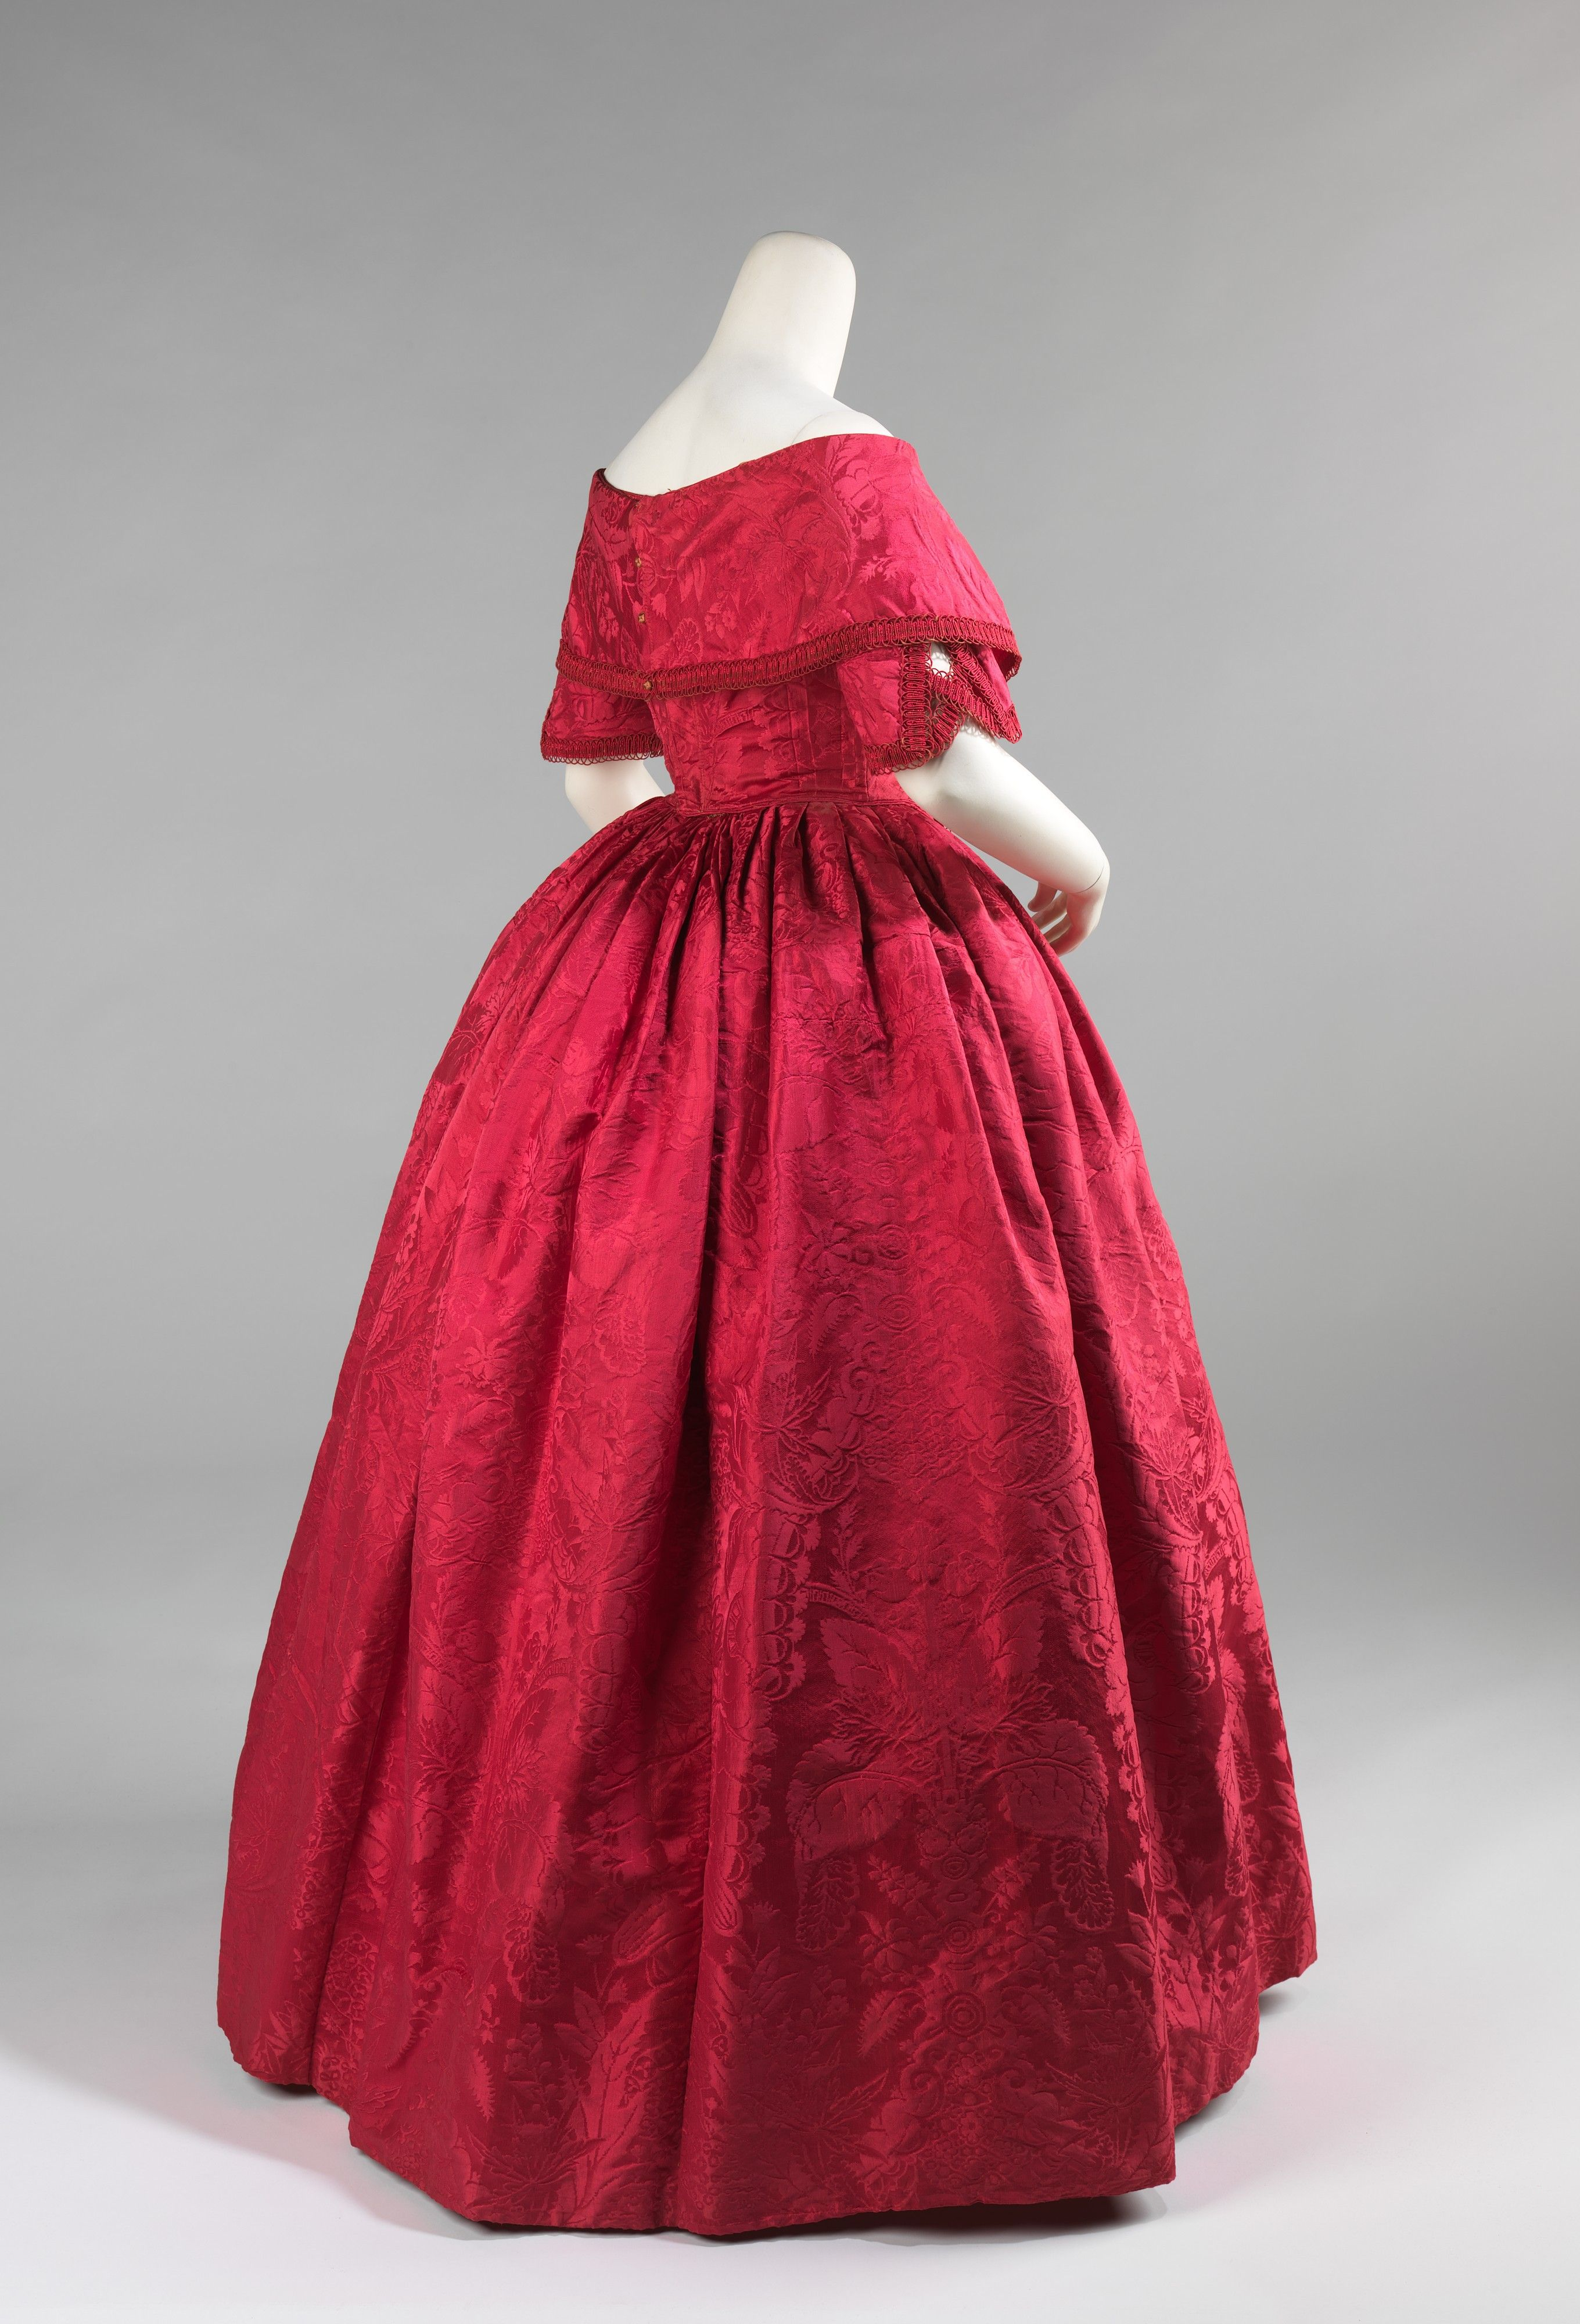 Ball gown ca british all things historic fashion